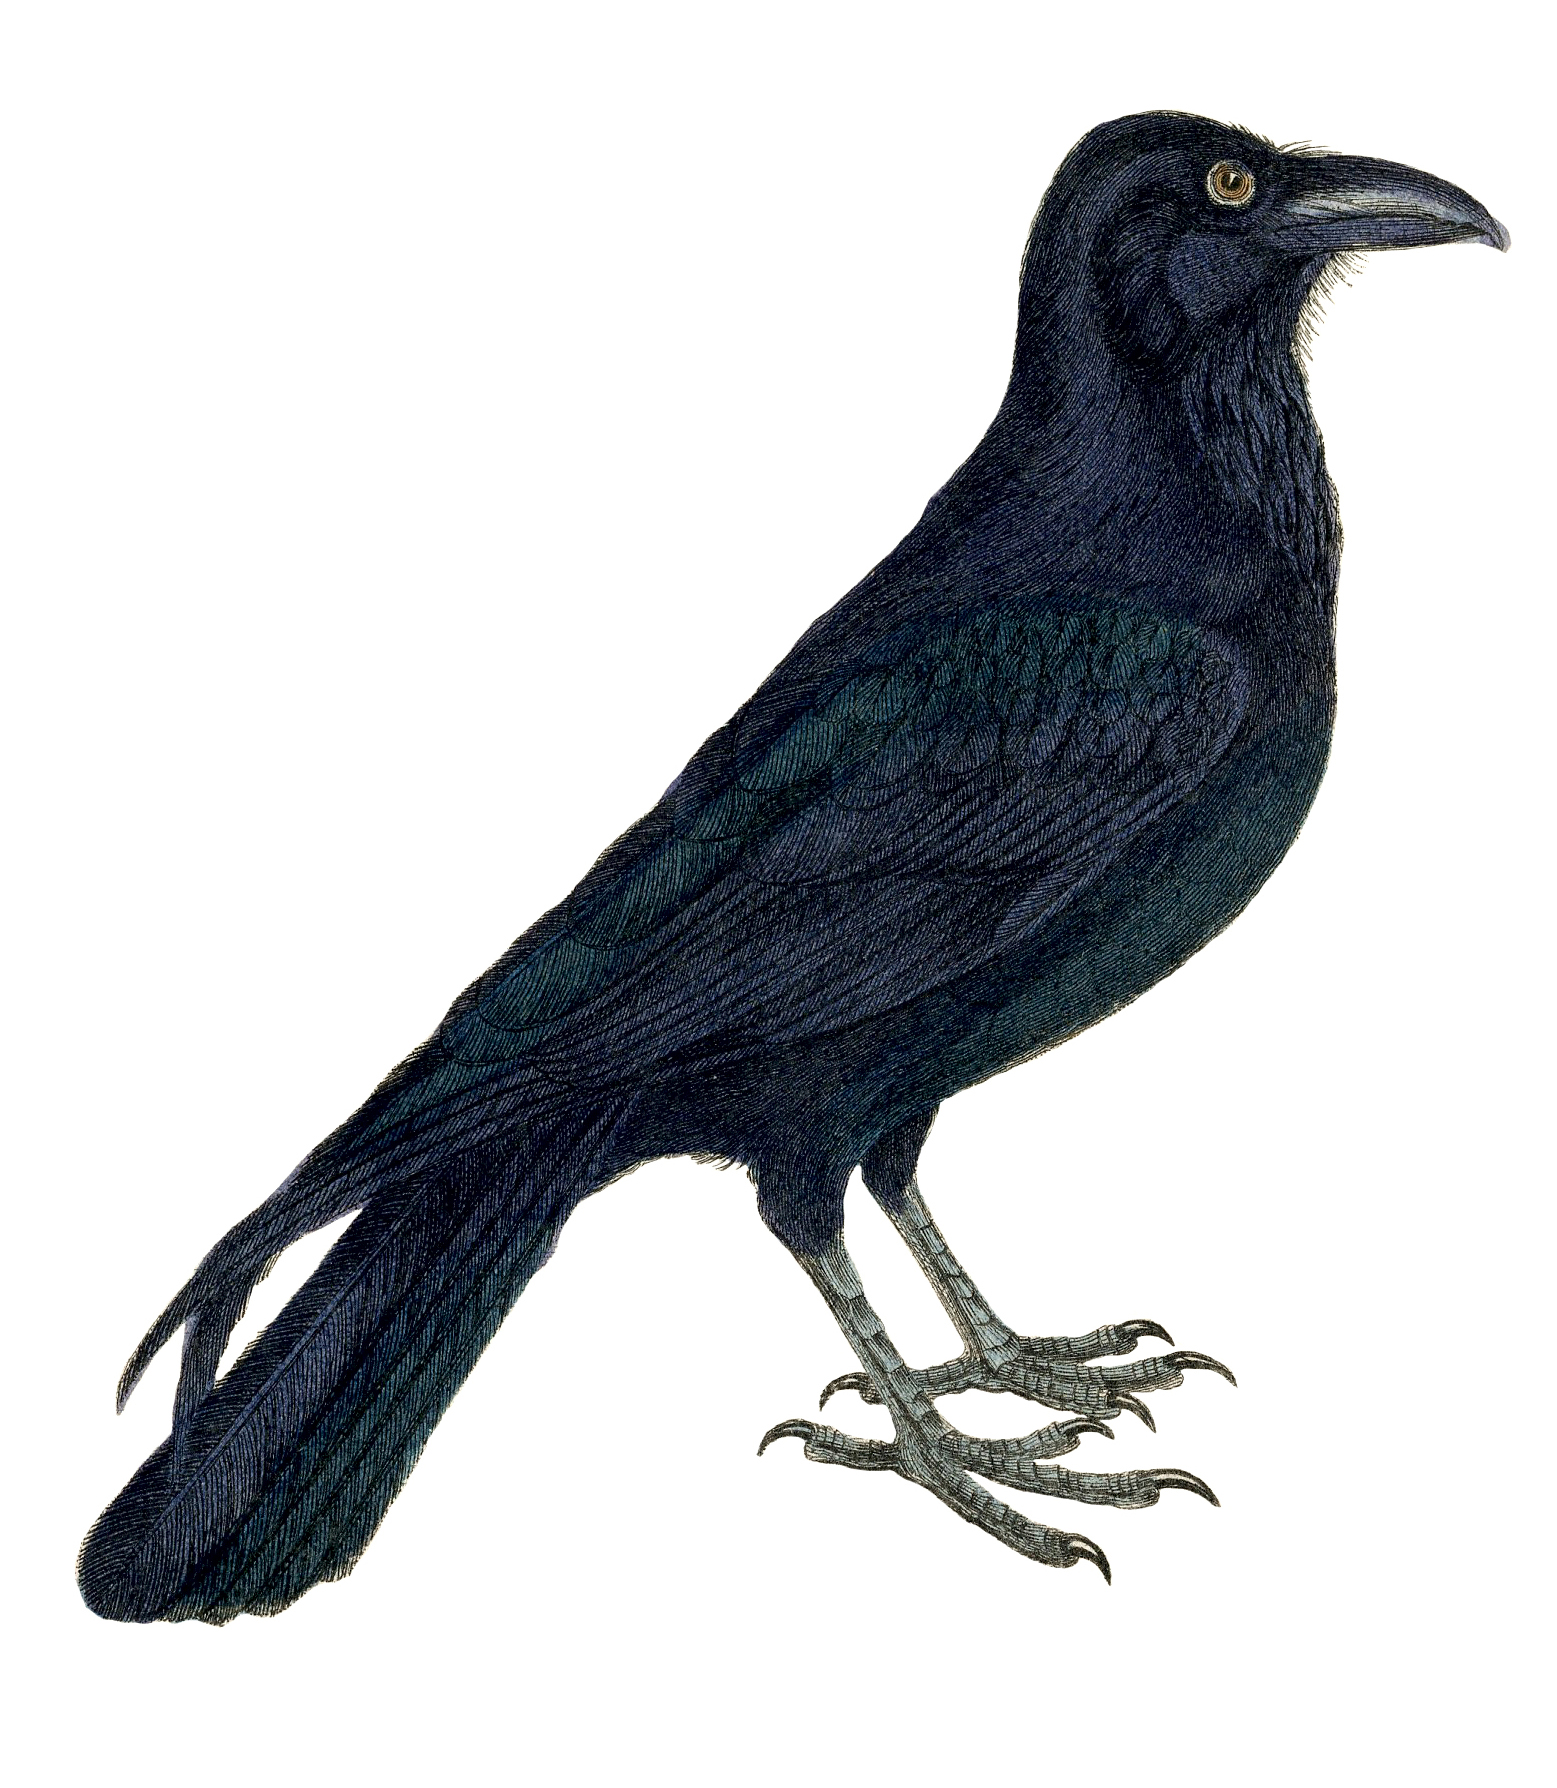 Crow clipart #4, Download drawings